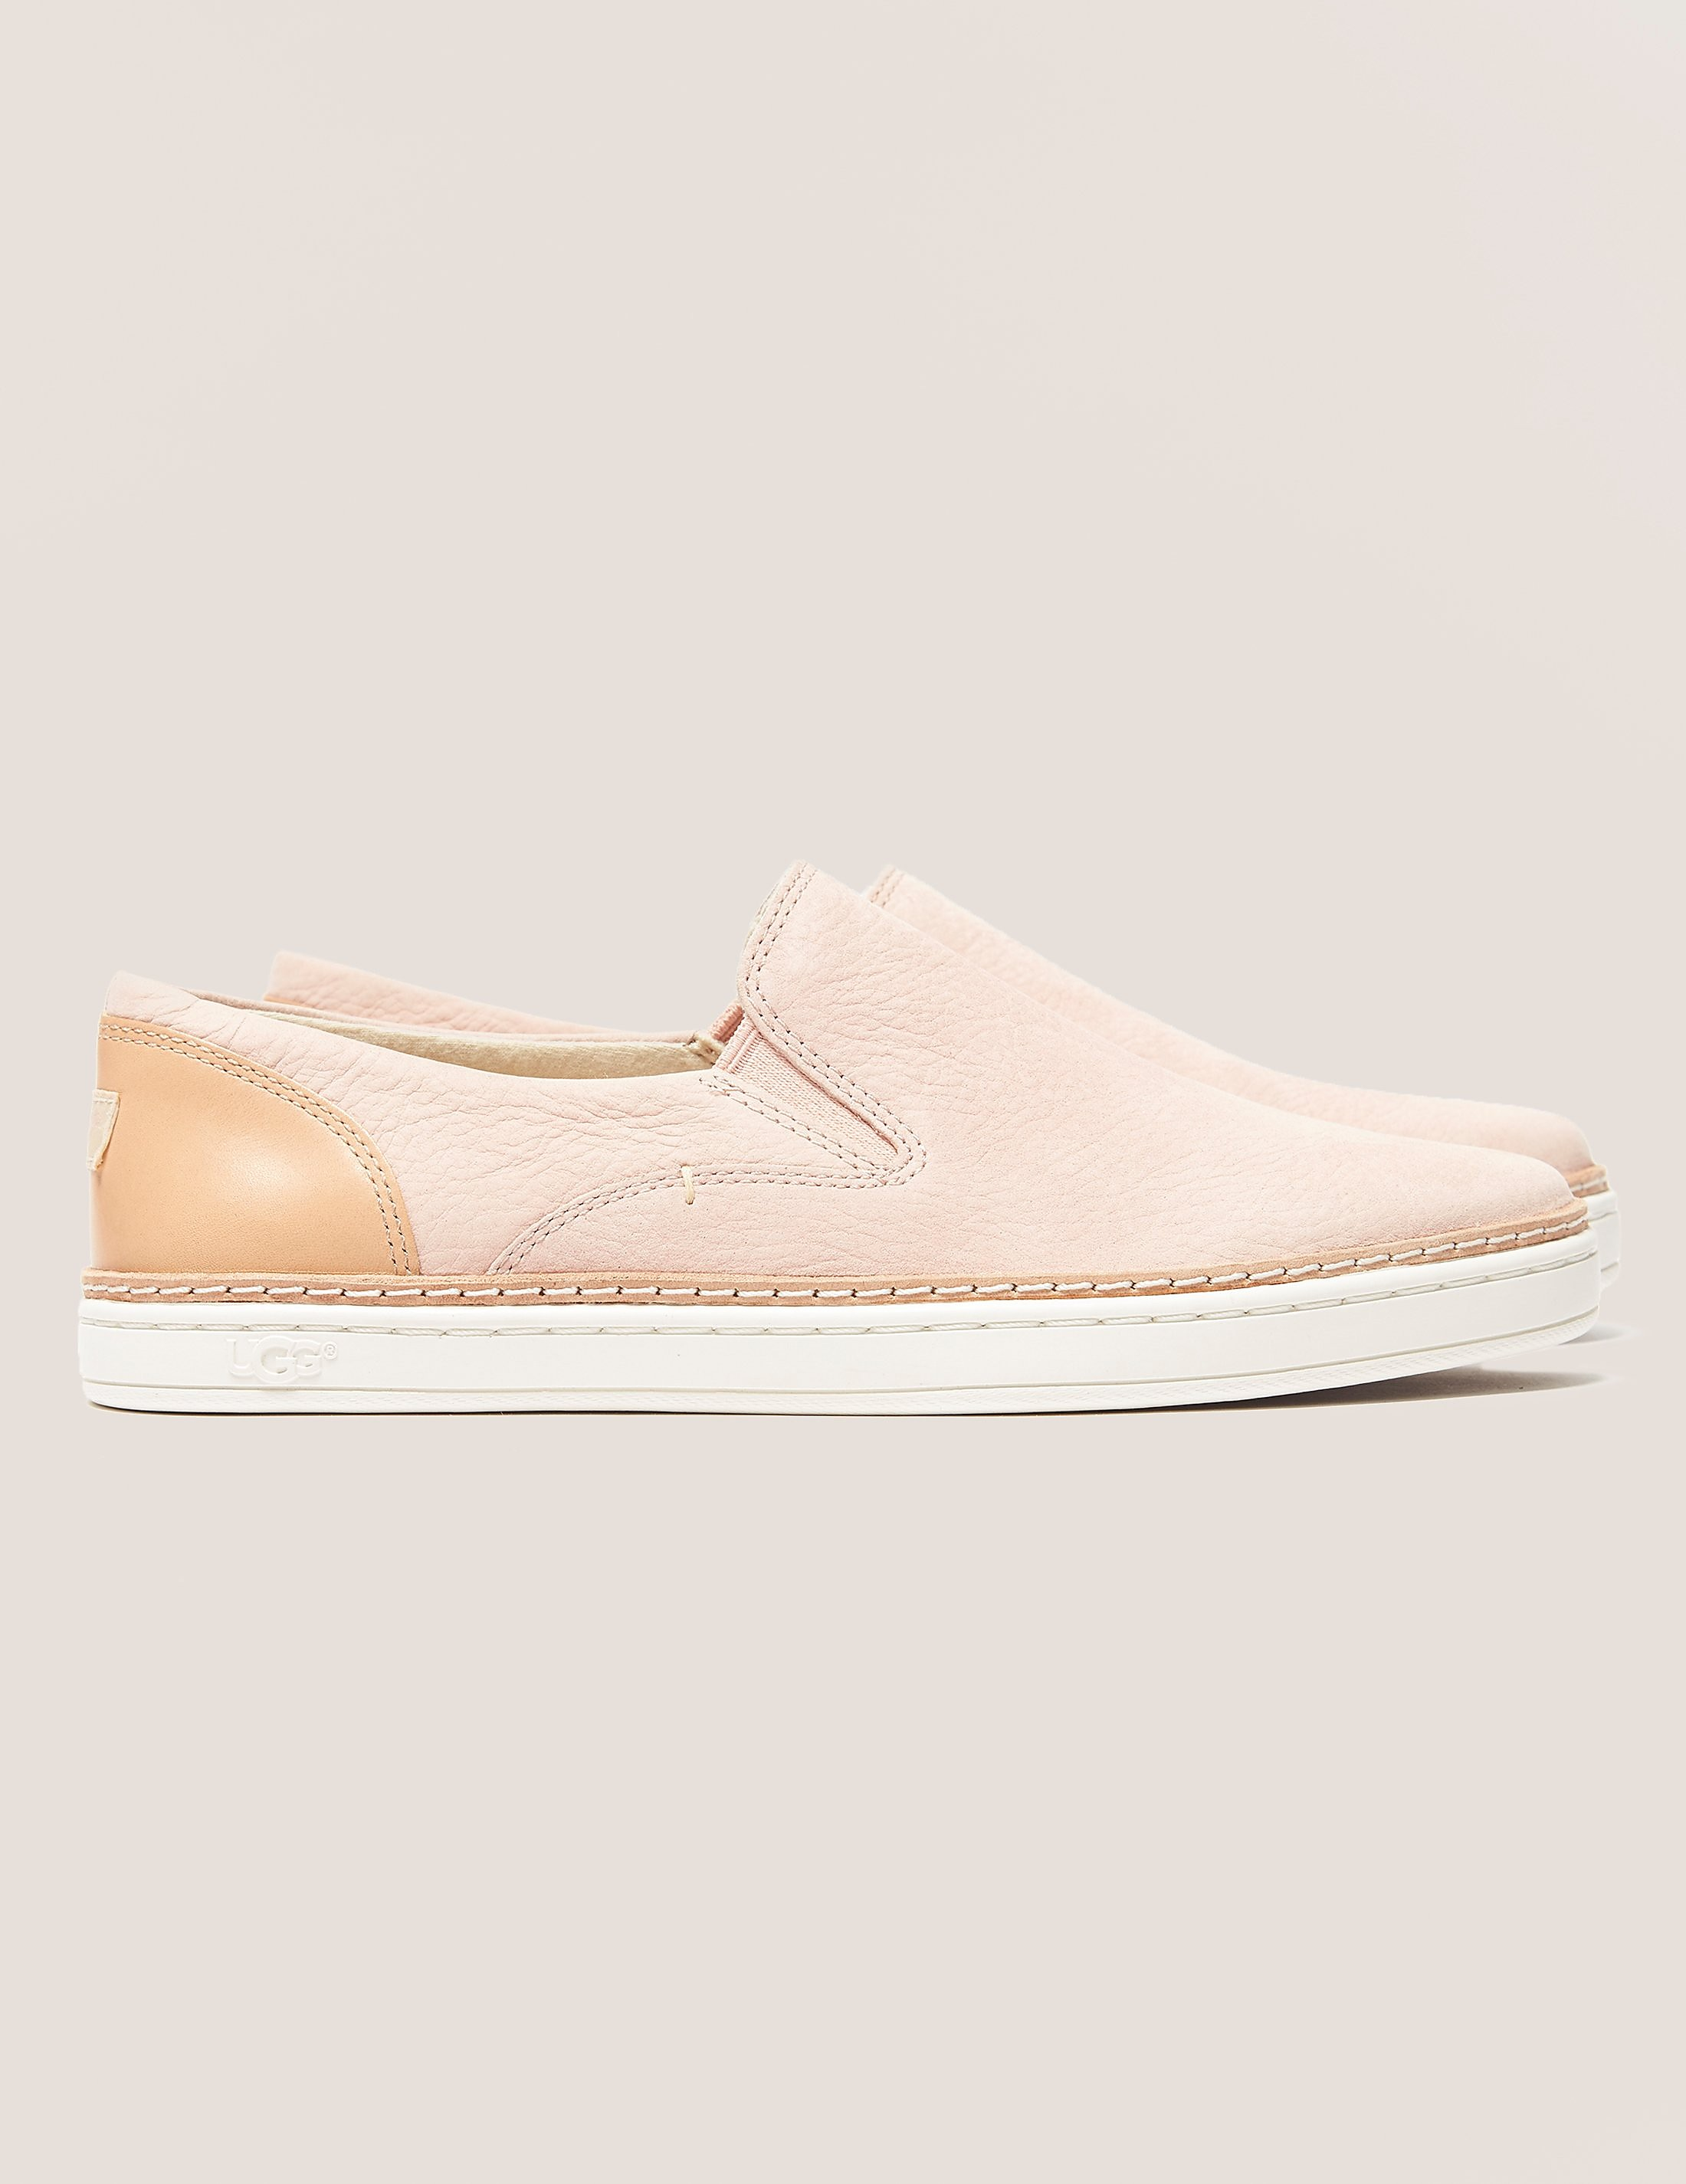 UGG Adley Slip On